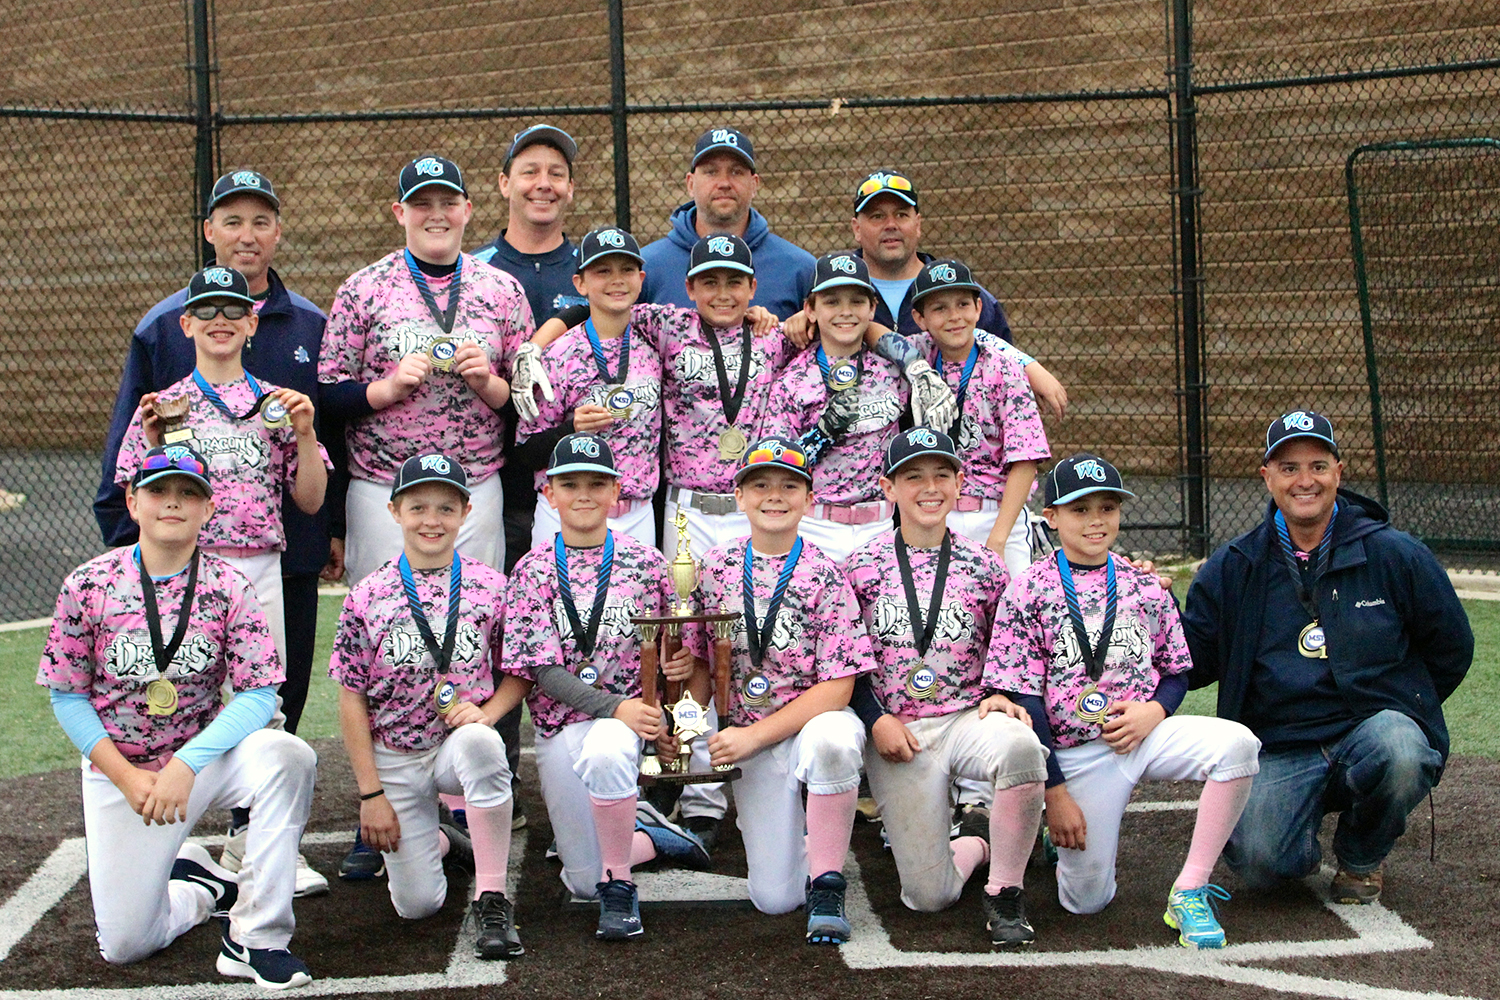 11u NL West Chester Dragons travel baseball team wins the MSI Mother's Day Tournament 2018 on May 13, 2018.